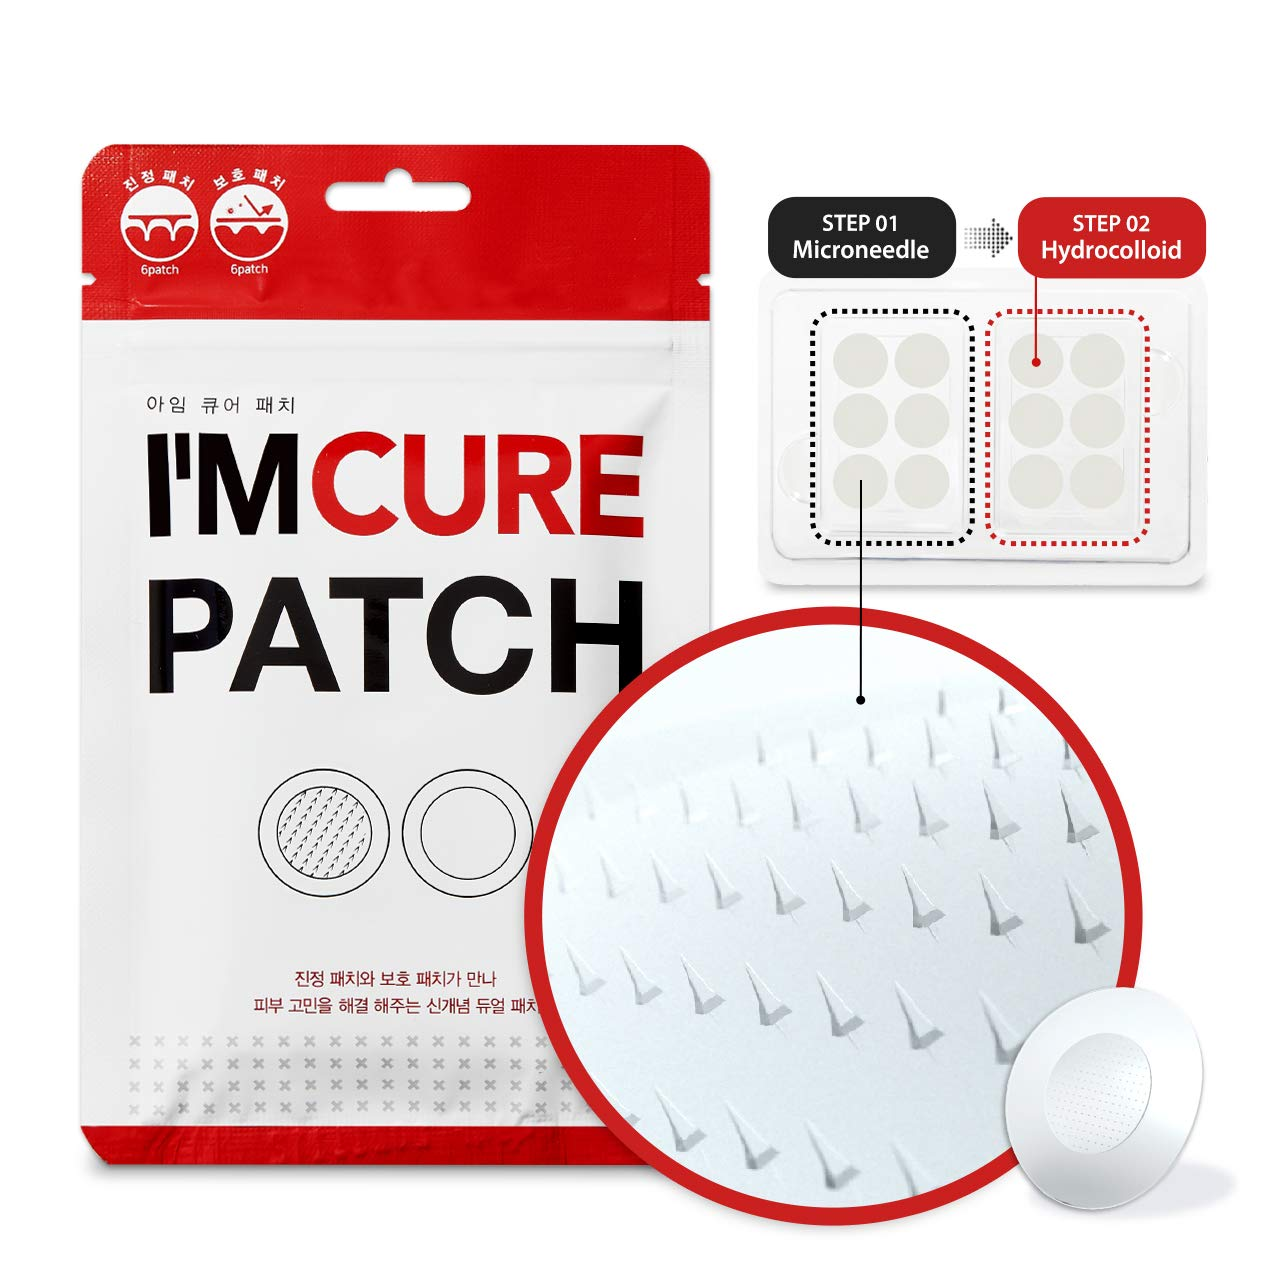 KARATICA Hydrocolloid IM CURE PATCH Acne Pimple Instant Healing Patch, Absorbing Hyaluronic Acid